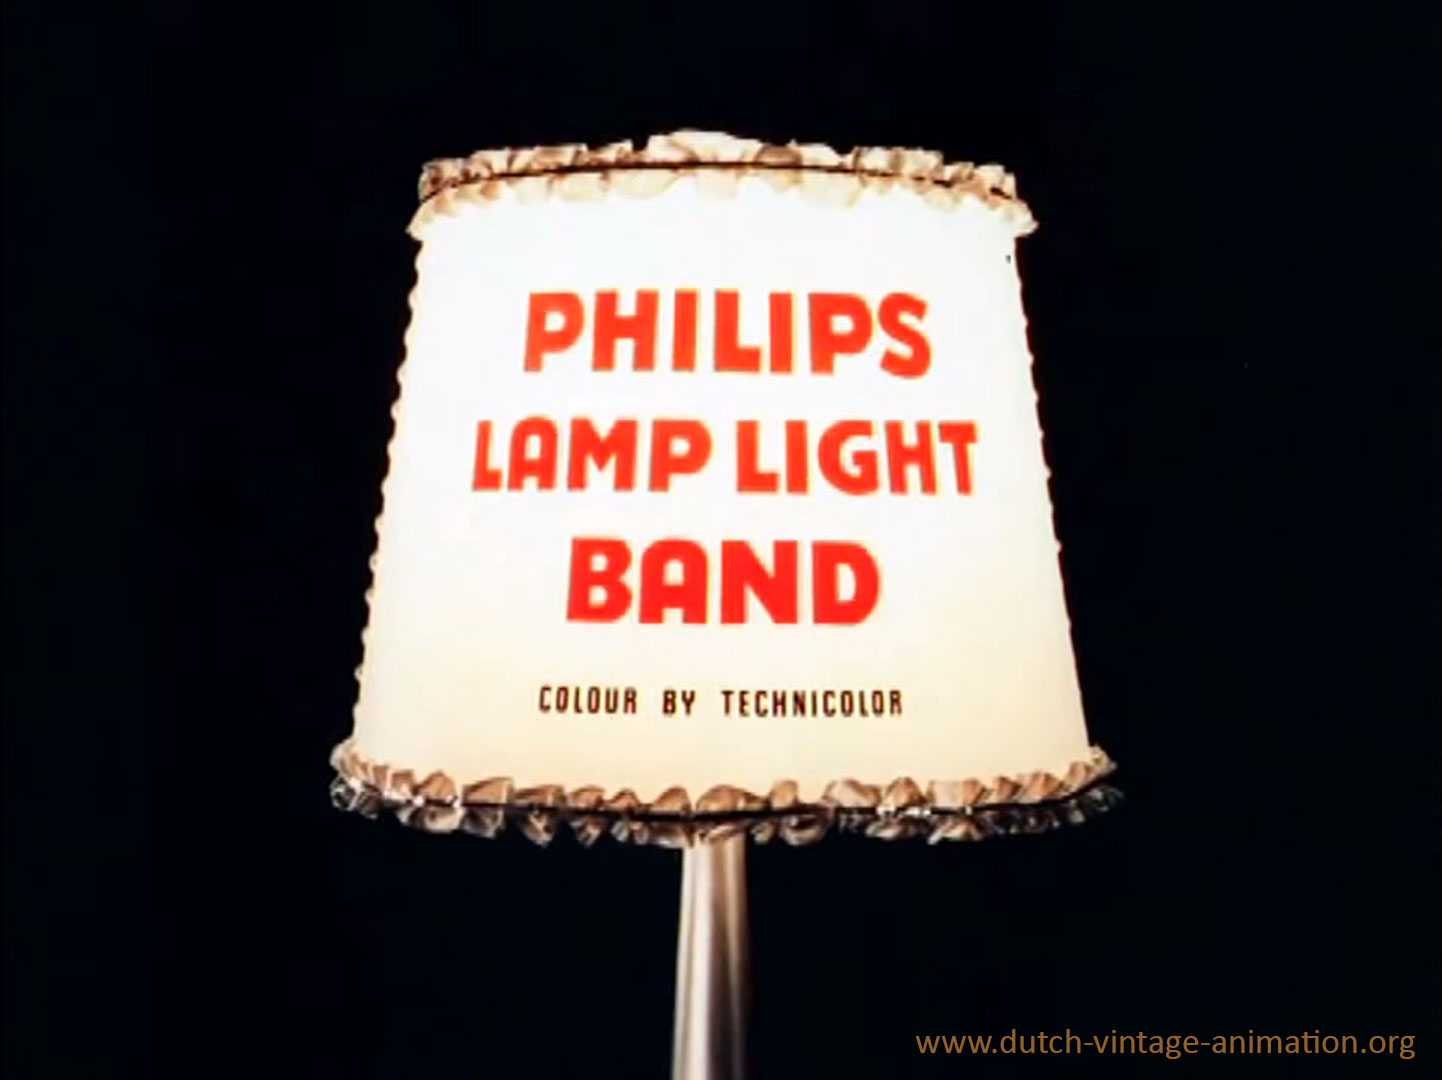 Philips Lamp Light Band (1957)